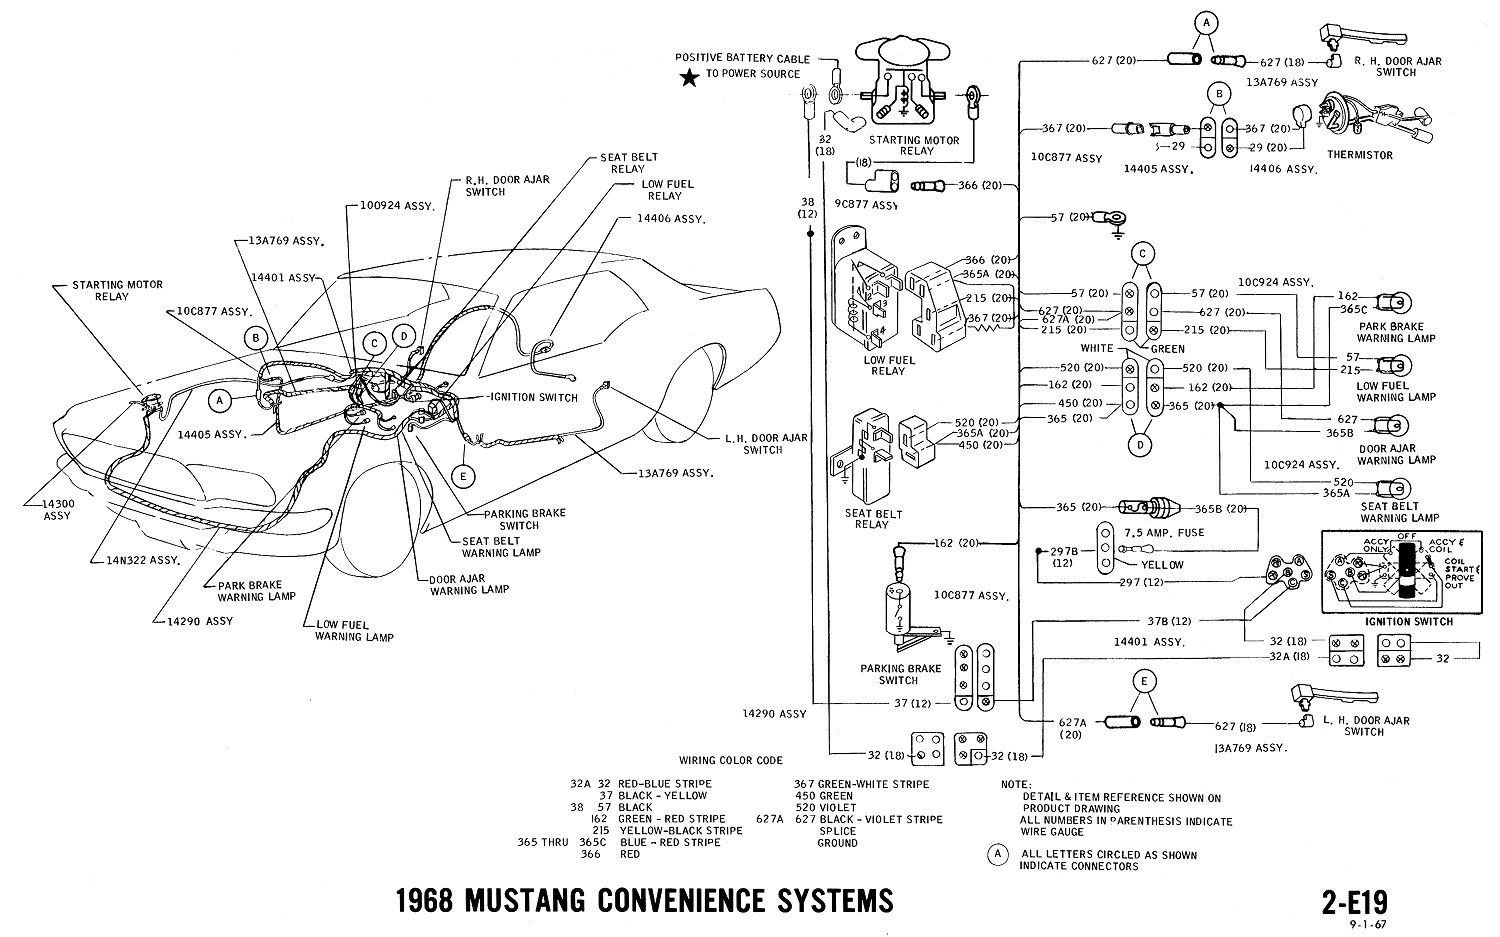 1968 mustang wiring diagram convenience systems 65 mustang dash wiring diagram 1965 ford mustang wiring diagram 1965 ford mustang wiring diagrams at gsmx.co